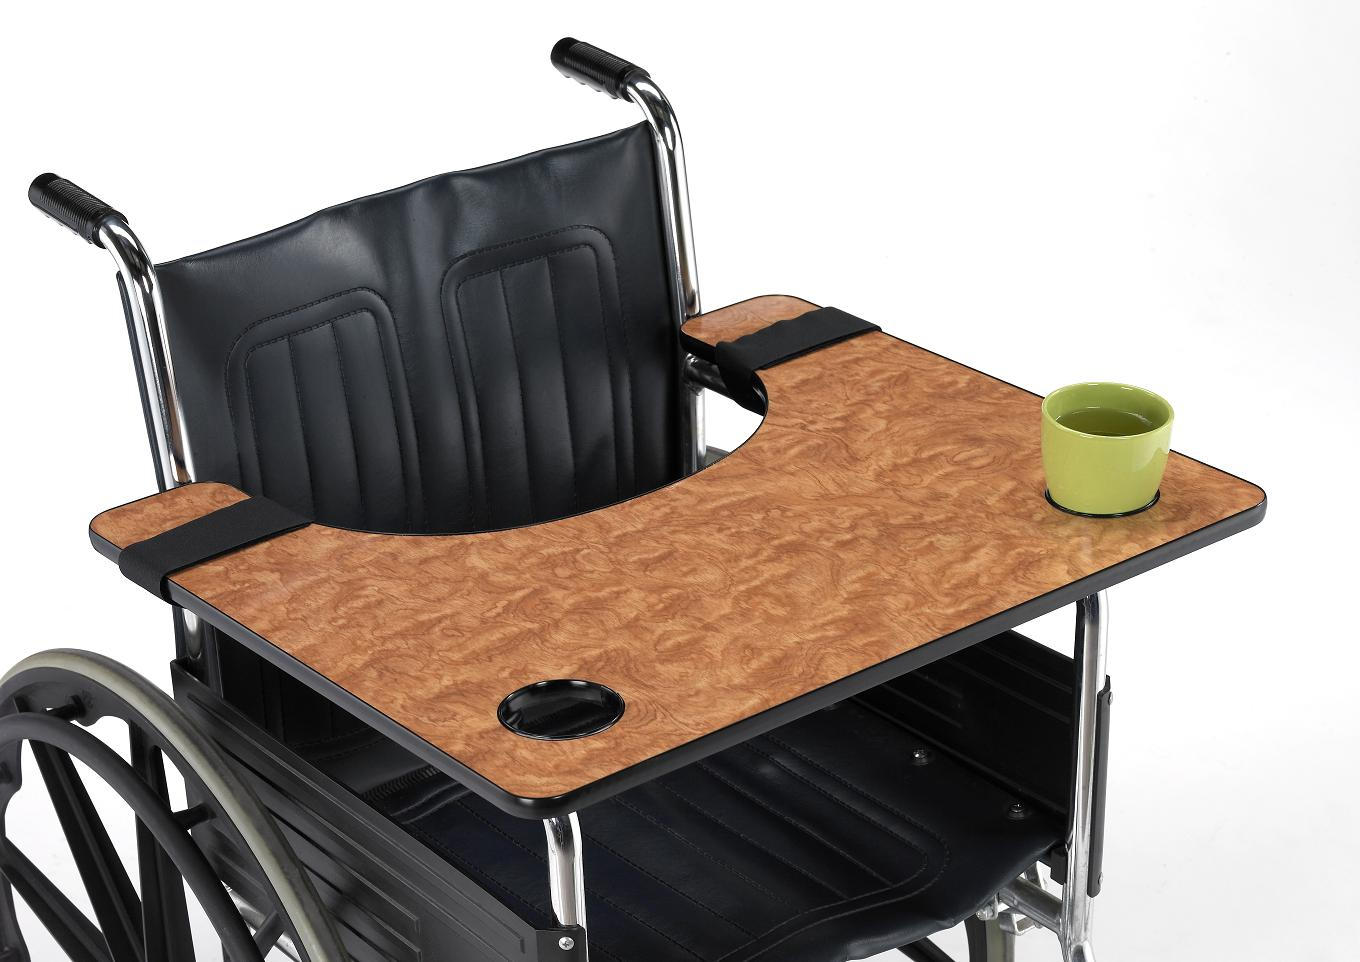 wheelchair accessories: table tray